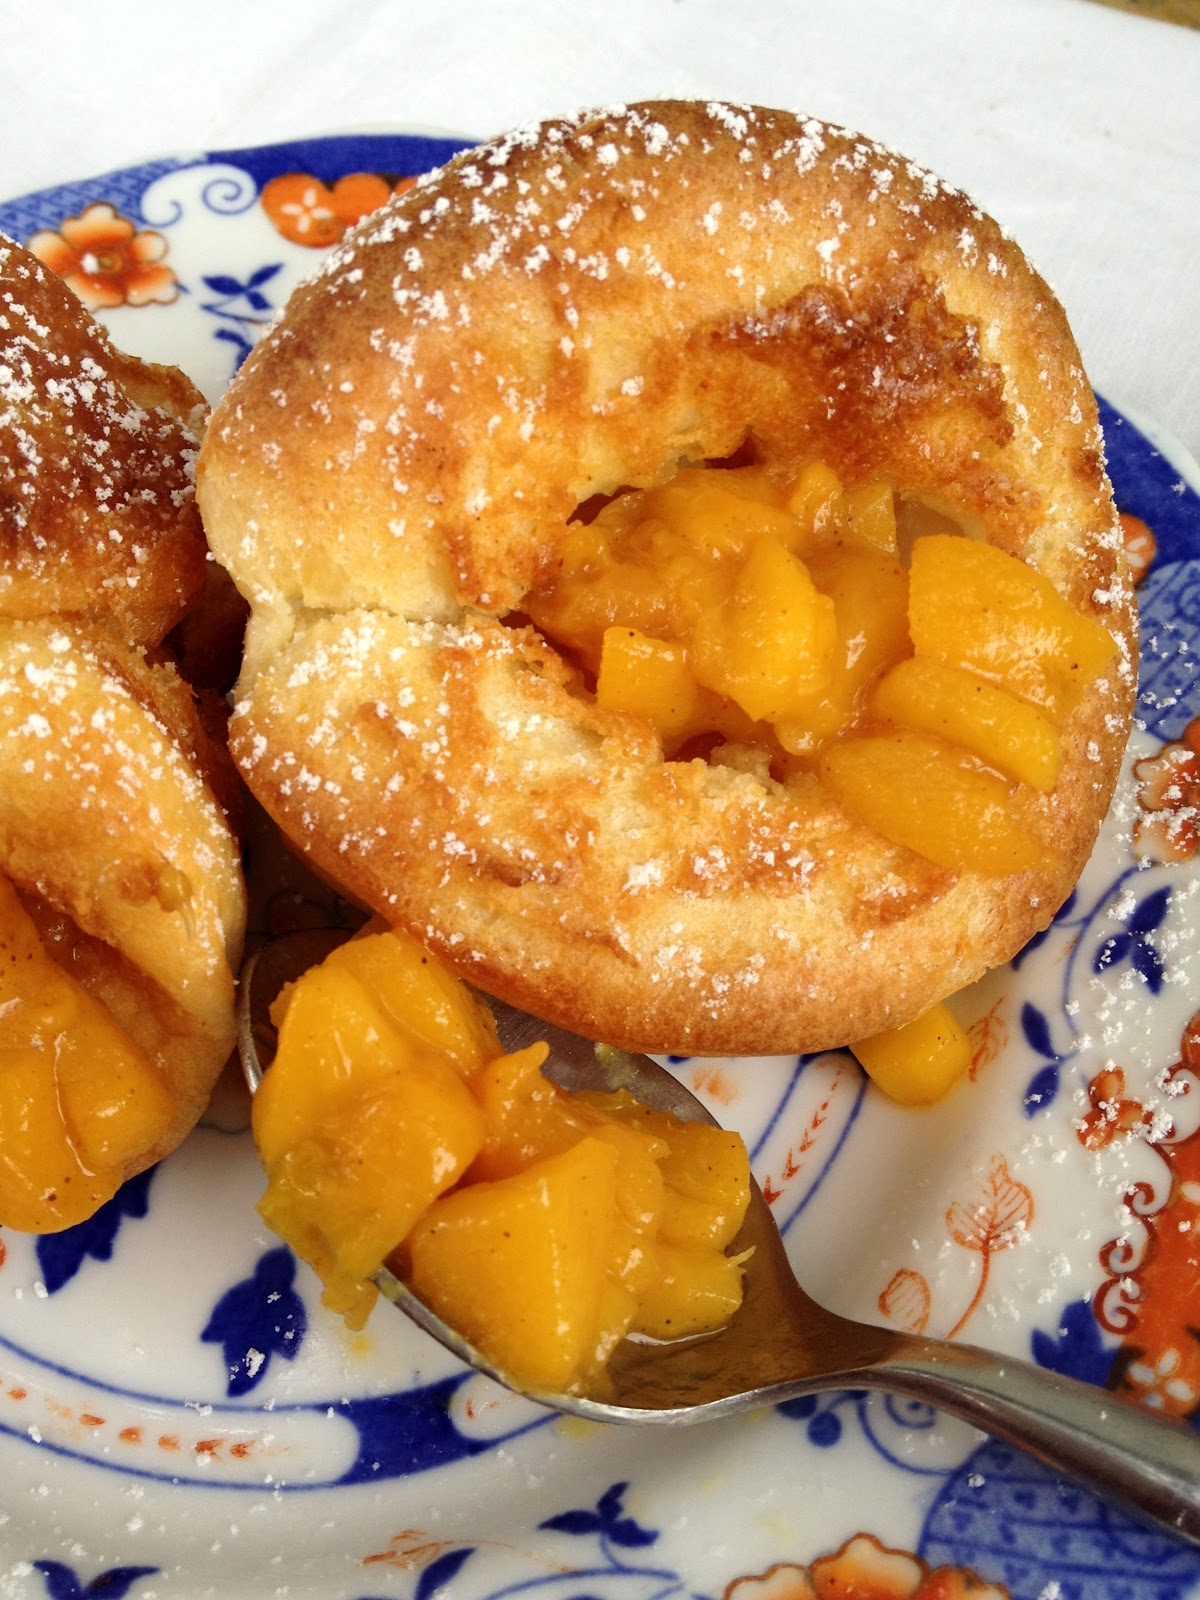 ... Dutch Puff Pancakes with Peach Compote Featuring NECTRESSE All-Natural